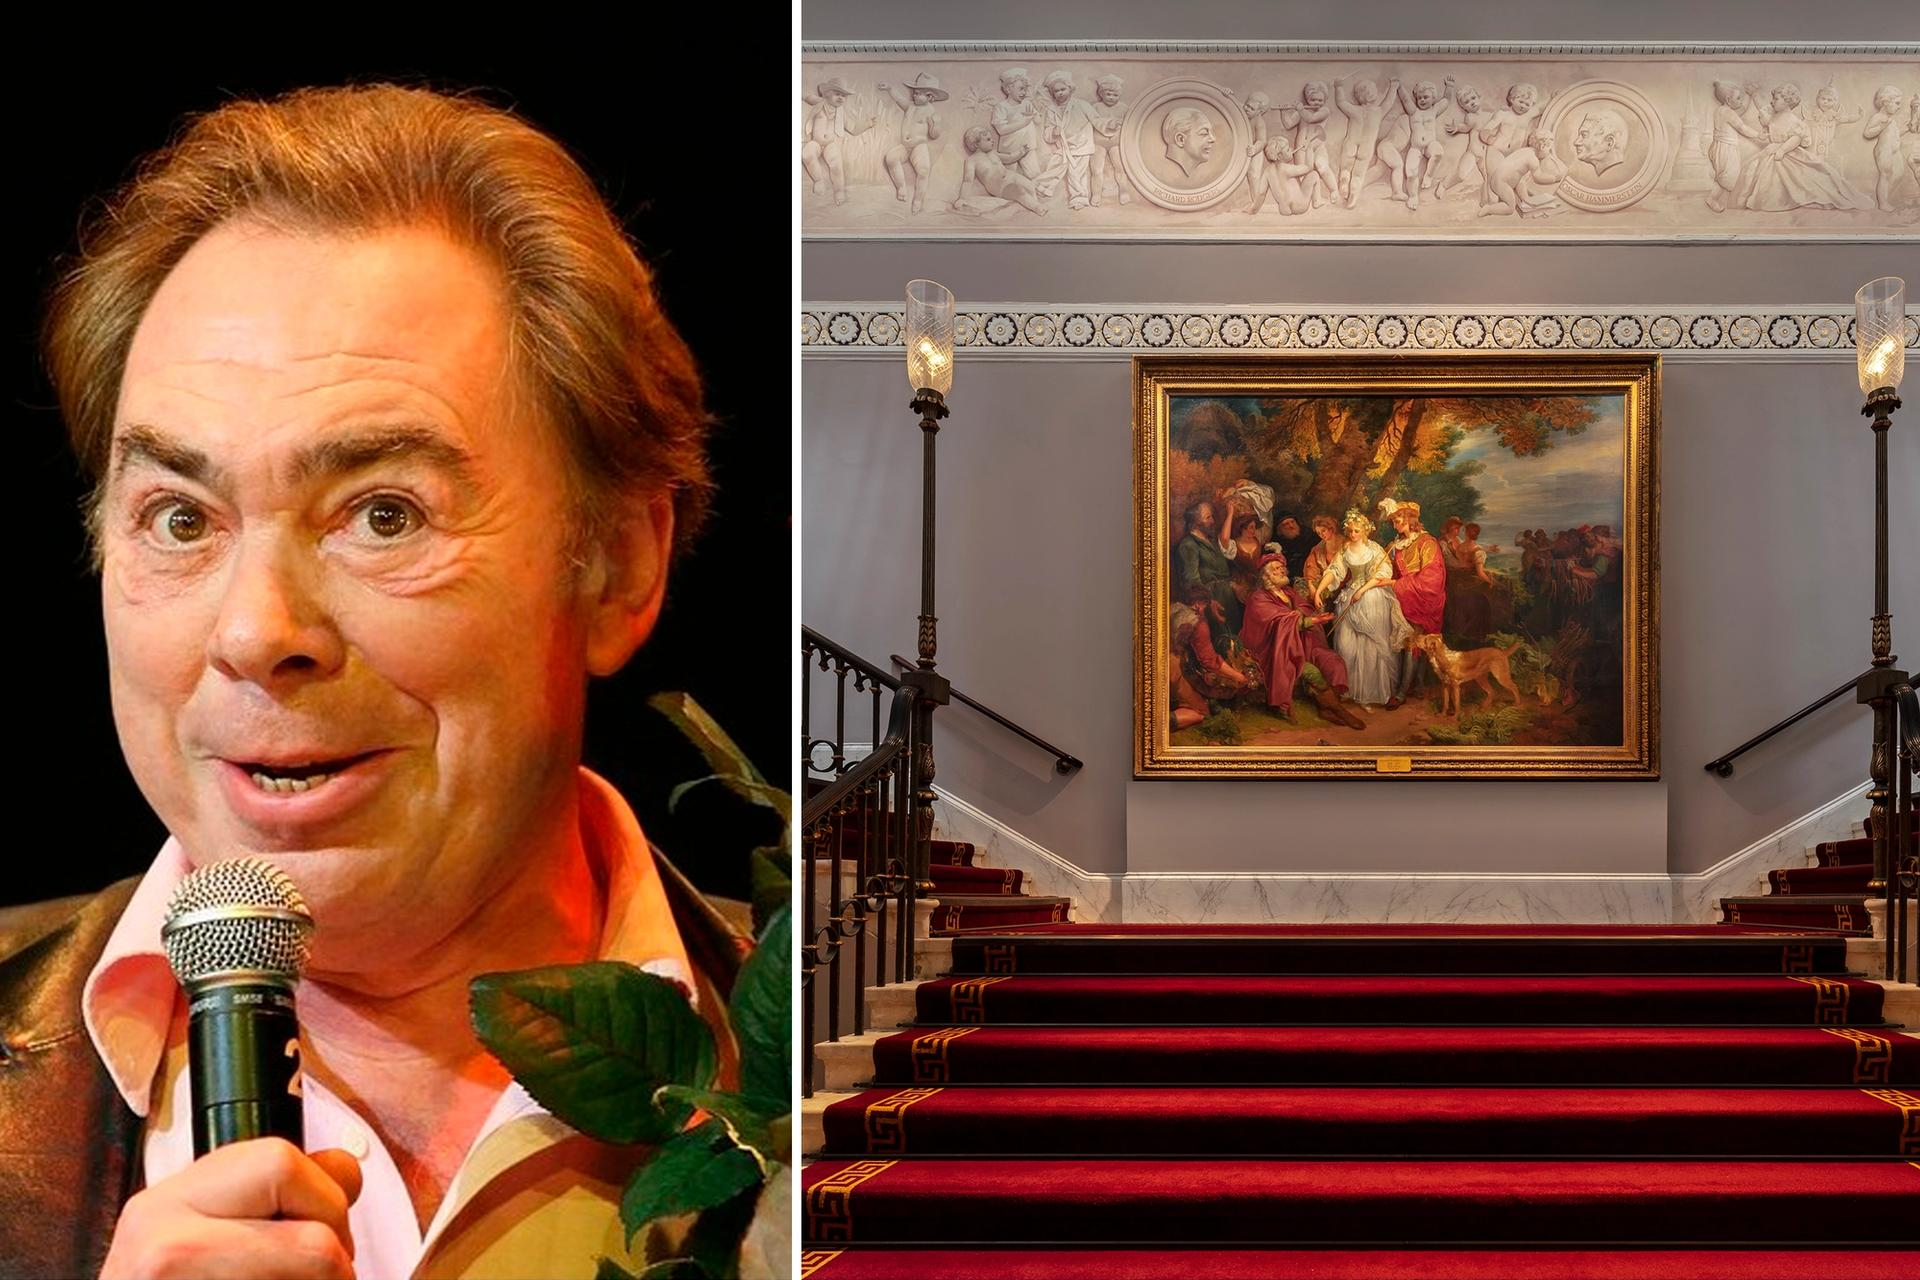 Andrew Lloyd Webber is showing some of his Pre-Raphaelite masterpieces at Theatre Royal Drury Lane. Pictured: William Hamilton's Love's Labours Lost, Act IV, Scene 1 (1788) Webber: Effie/Wikimedia; Theatre: Courtesy of TM Lighting and Andrew Beasley Photography